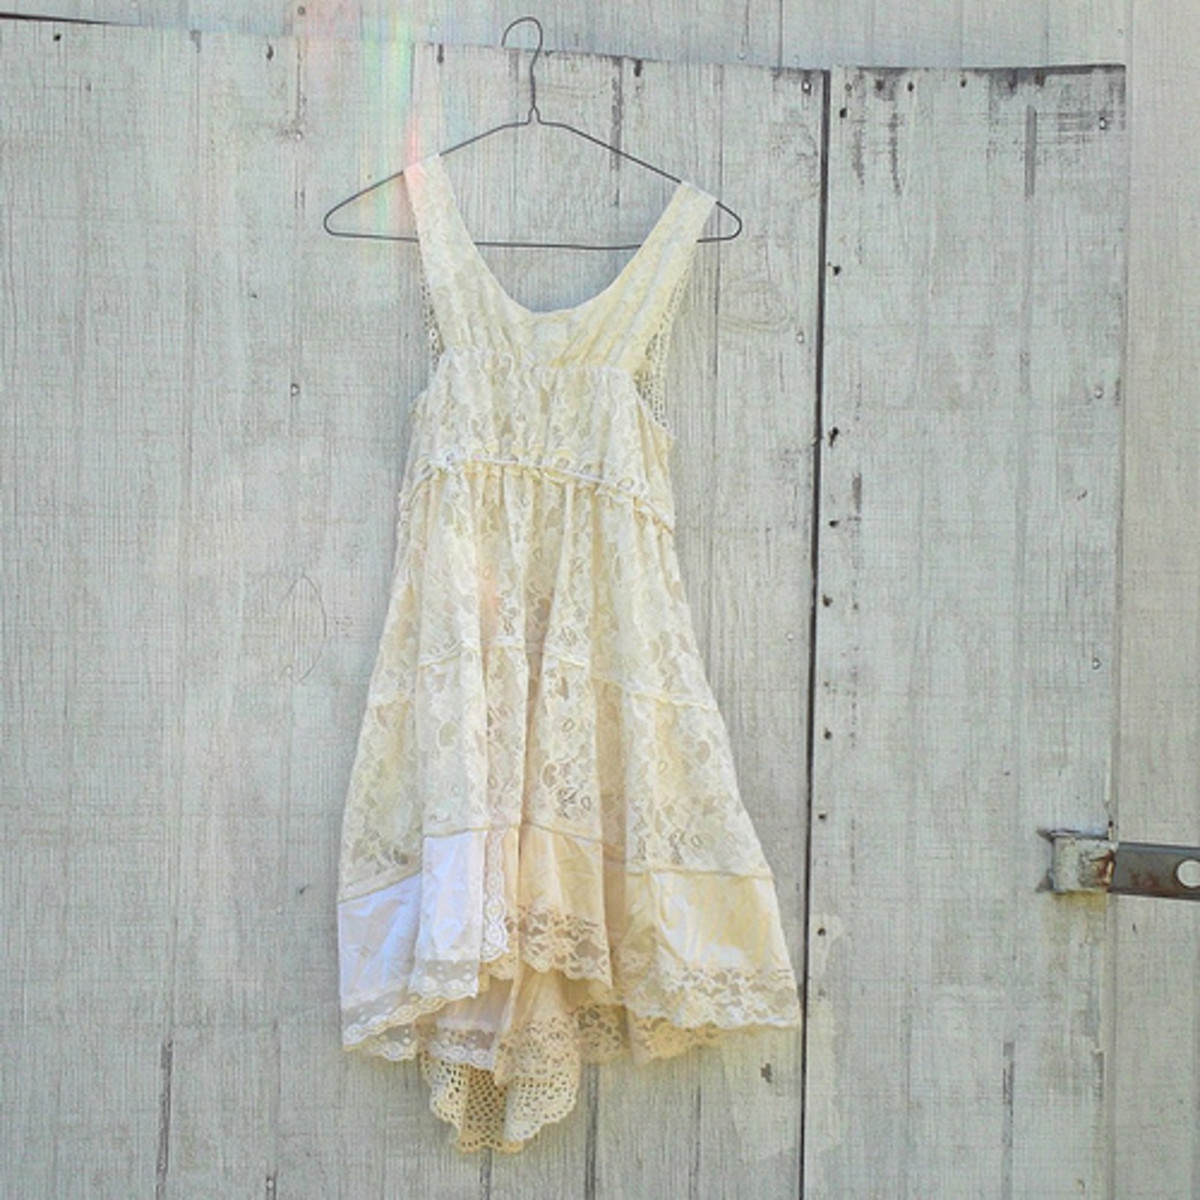 A Lacy Summer Sundress